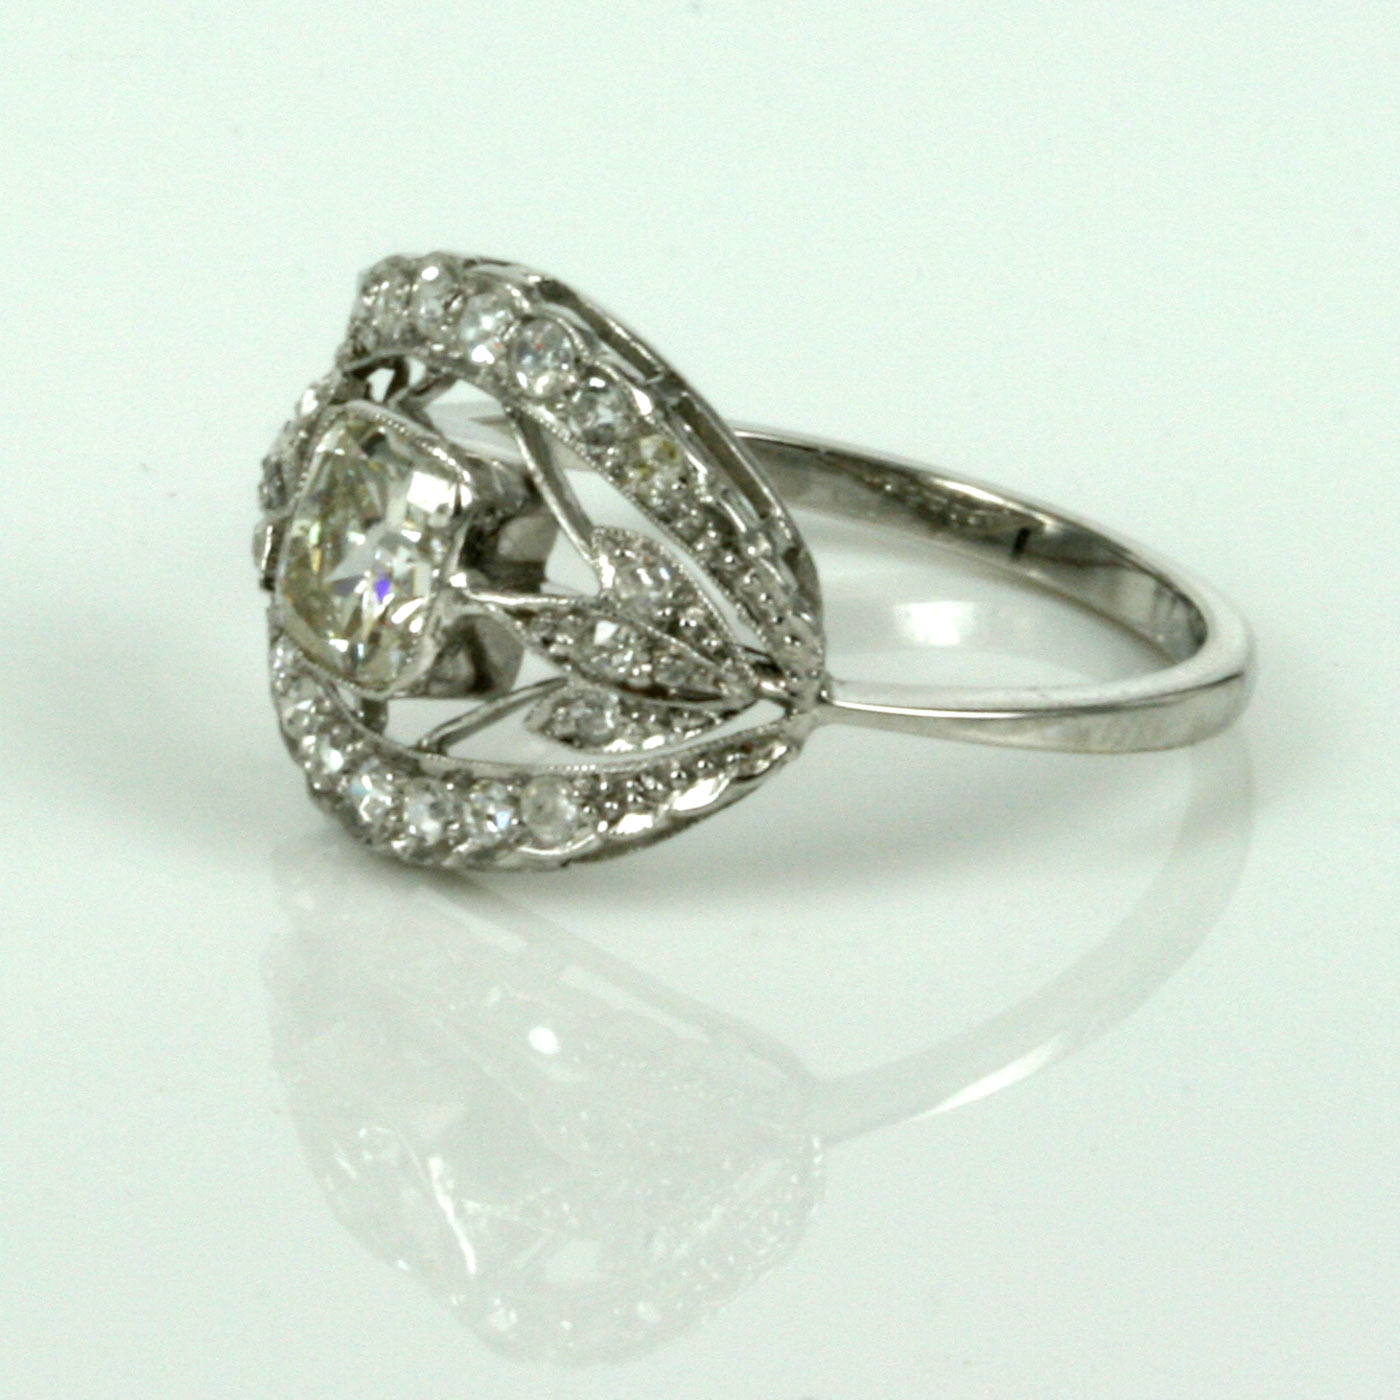 art deco diamond engagement ring made in platinum art deco wedding ring Art Deco diamond engagement ring made in platinum